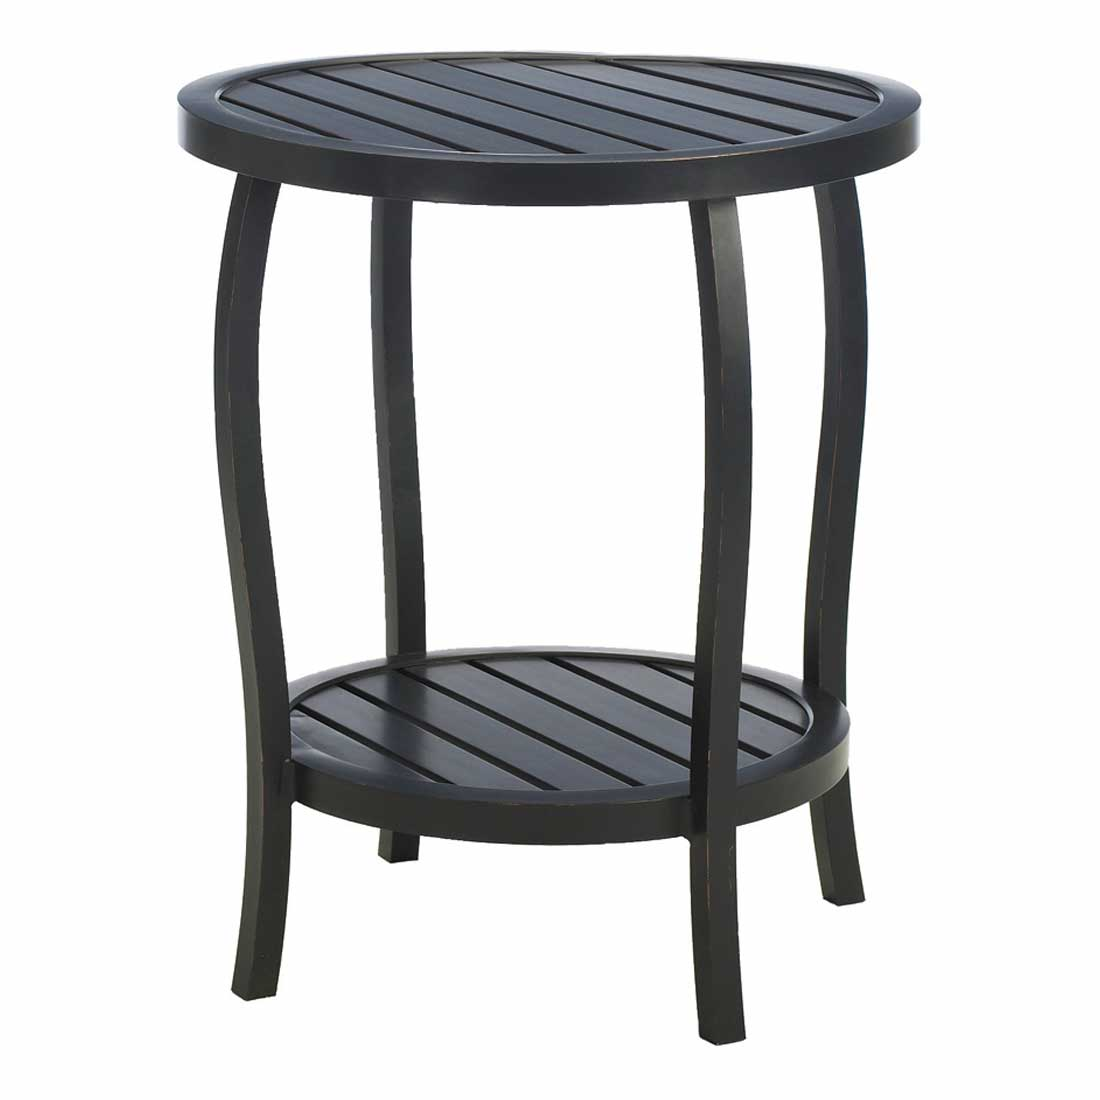 patio side table outdoor end accent furniture wood yard black round cottage metal tables umbrella hole windham cabinet with drawer ashley and chairs brown large silver wall clock